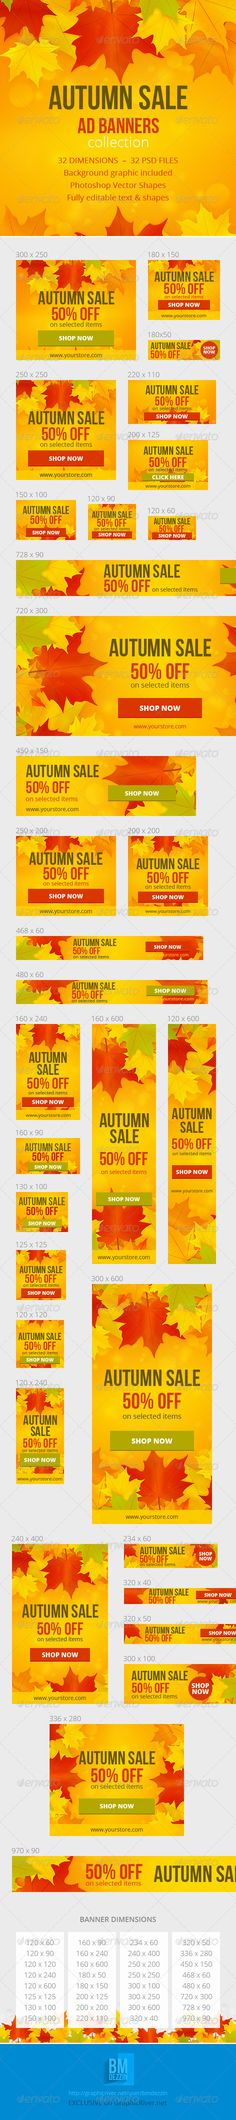 Autumn Sale Ad Web Banners Template PSD | Buy and Download…